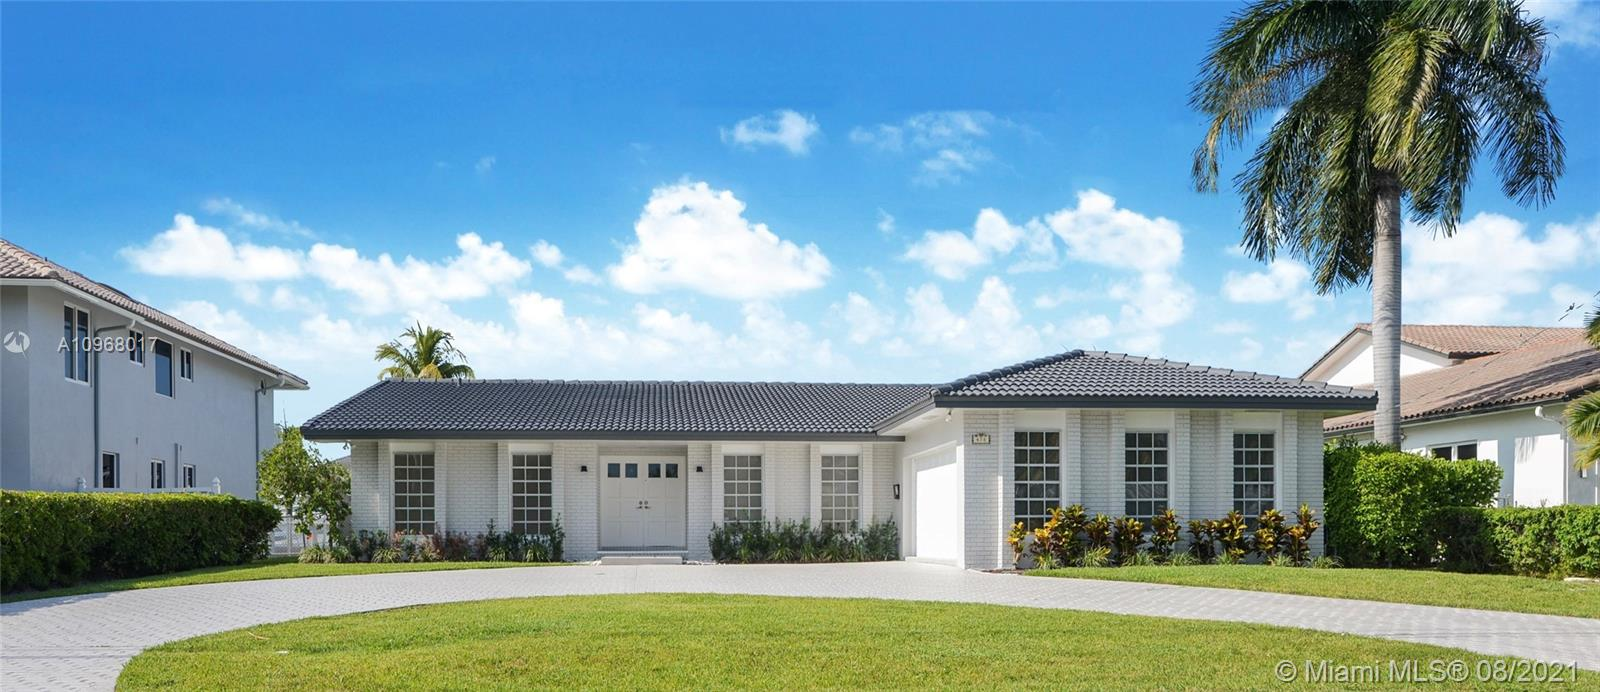 478  Sunset Dr  For Sale A10968017, FL